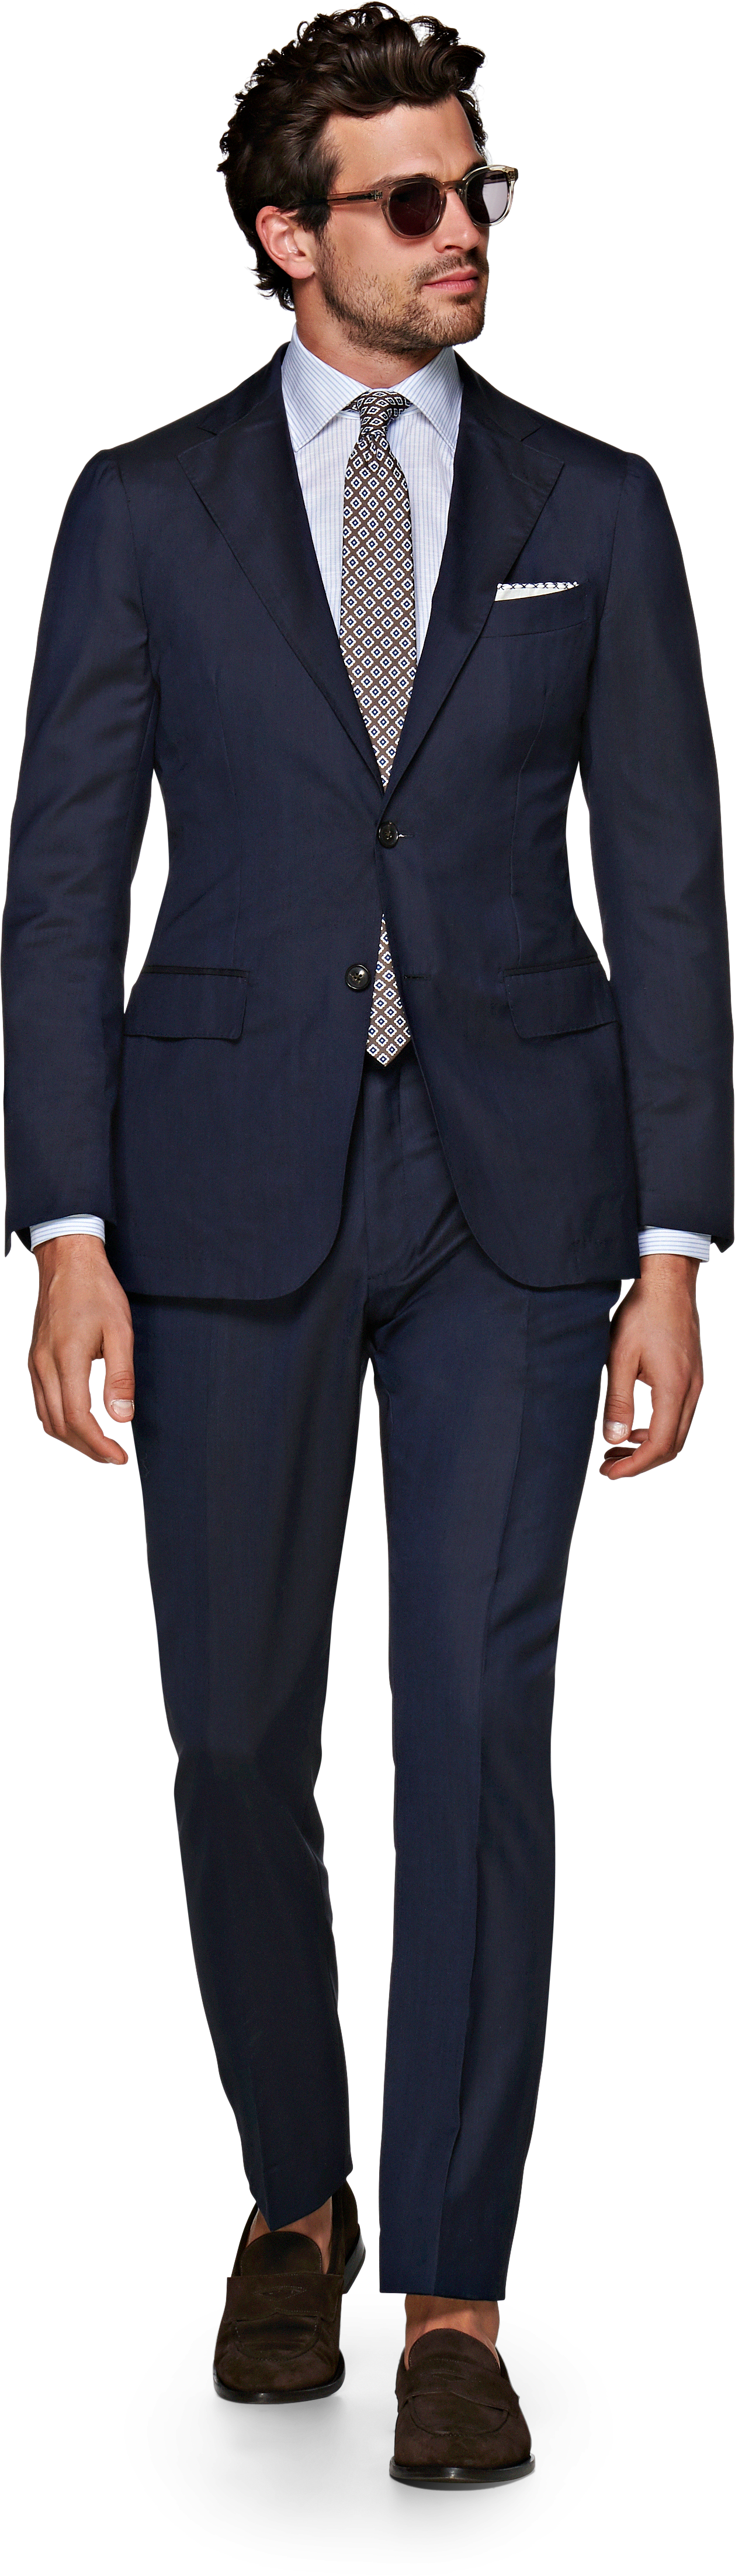 "I've personally never worn a suit but I can imagine how those bad boys could sometimes weigh you down. BUT!{&nbsp;}<a  href=""https://us.suitsupply.com/en_US/suits/havana-navy--suit/P5654I.html?pdp=true"" target=""_blank"" title=""https://us.suitsupply.com/en_US/suits/havana-navy--suit/P5654I.html?pdp=true"">Suit Supply just released their lightest suit yet - unlined and completely unconstructed, the World's Lightest Suit</a>{&nbsp;}reimagines their Havana fit to make it breaaaaathe. ""Alongside staples like flap pockets, notched lapels and a pleated shoulder, the suit is elevated with refined accents like full AMF stitching and genuine horn buttons on the jacket, while the accompanying flat-front trousers feature side adjusters and a straight leg—The result is a remarkably breathable and lightweight wear that doesn't skimp on the classic suiting touches."" The suit weights 1.15 lbs compared to the average 2.27 lbs suit. (Image courtesy of Suit Supply)."